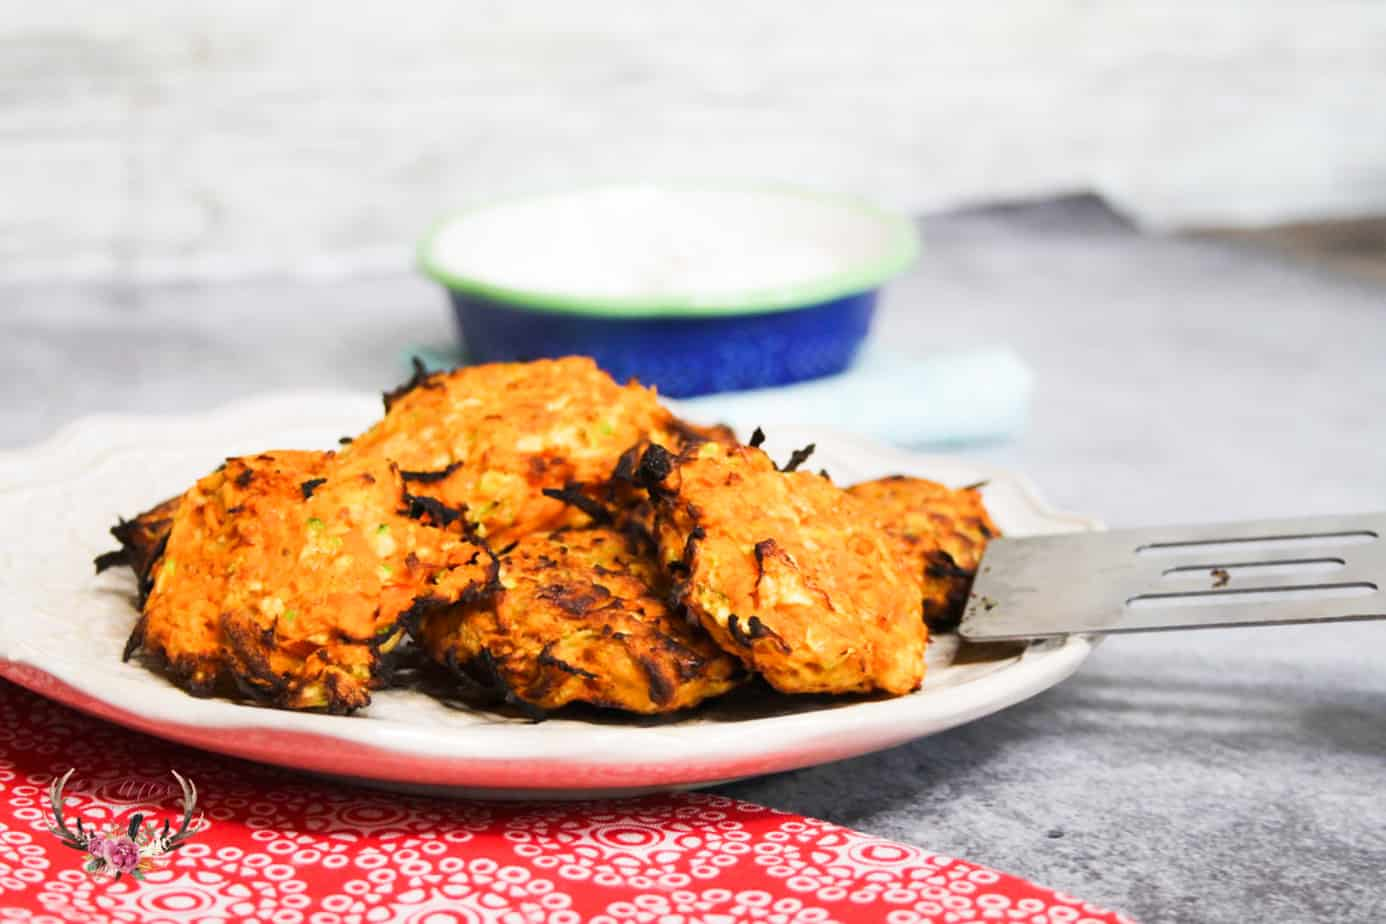 How to Make Zucchini Vegetable Fritters